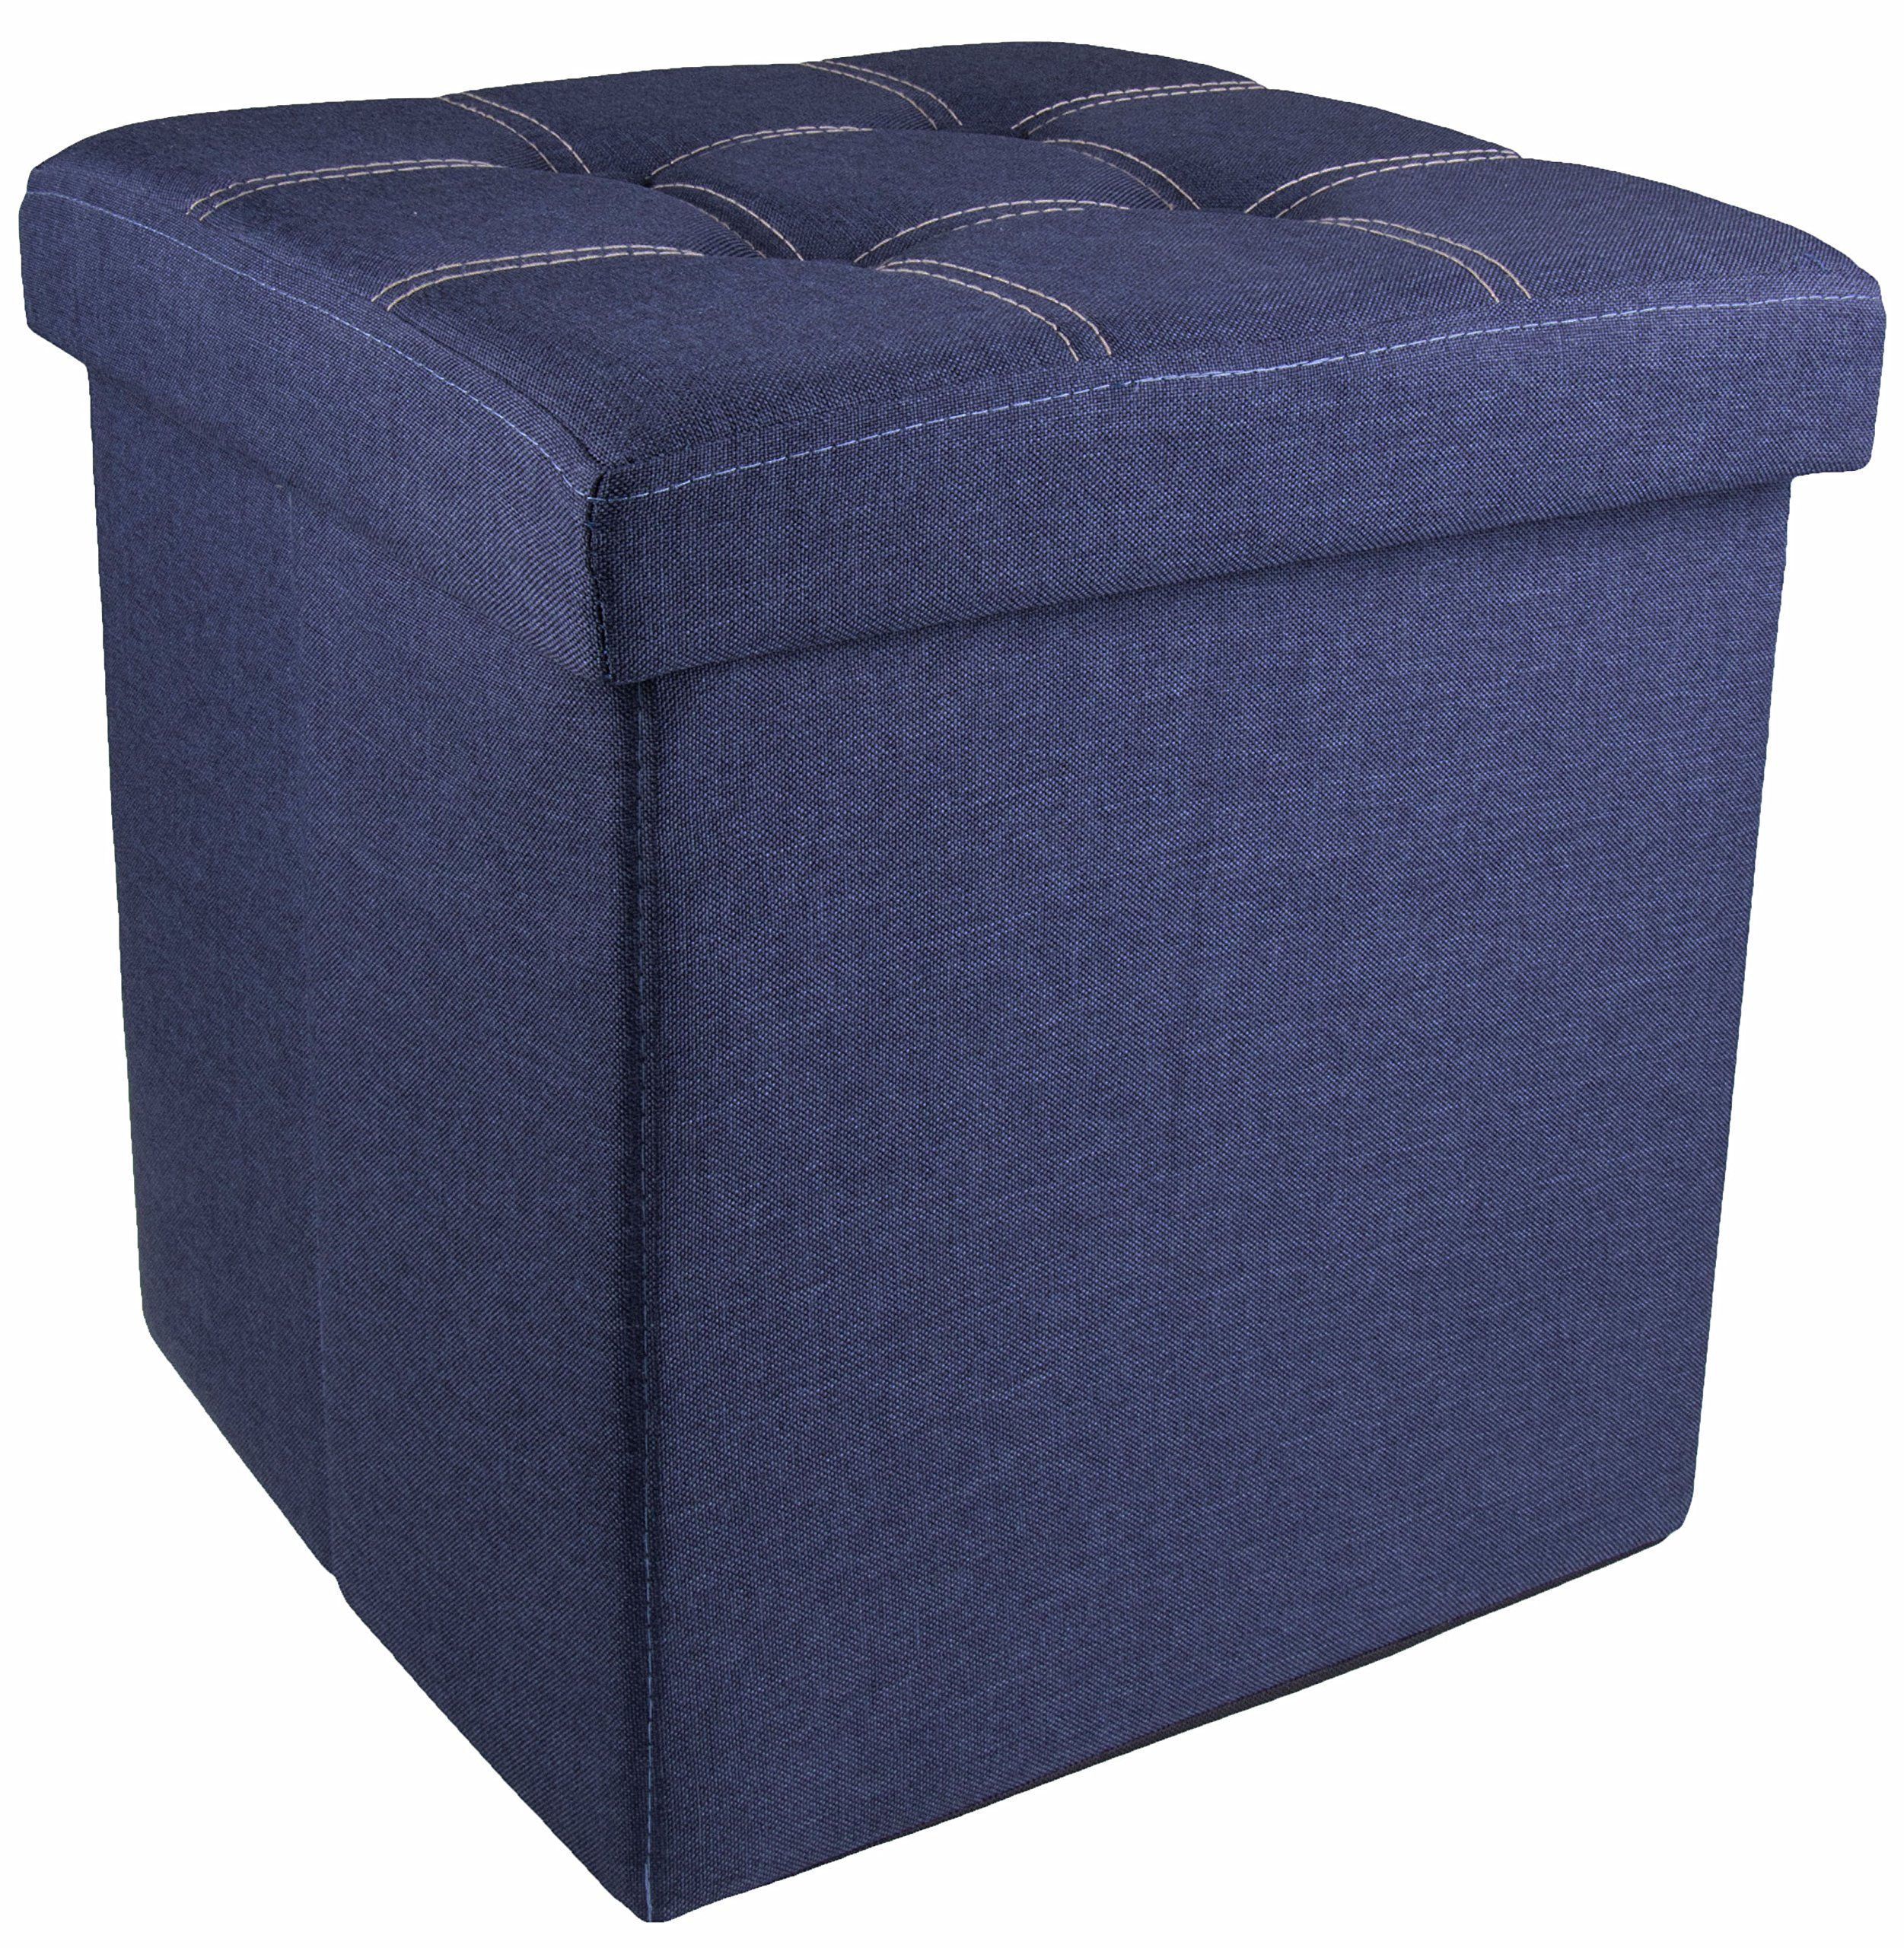 Clever Creations Denim Footrest Ottoman Modern Accent Piece Storage | Premium Materials | Trendy Décor | Perfect Size Any Room in the Home | Stylish Storage Blankets Games | Blue